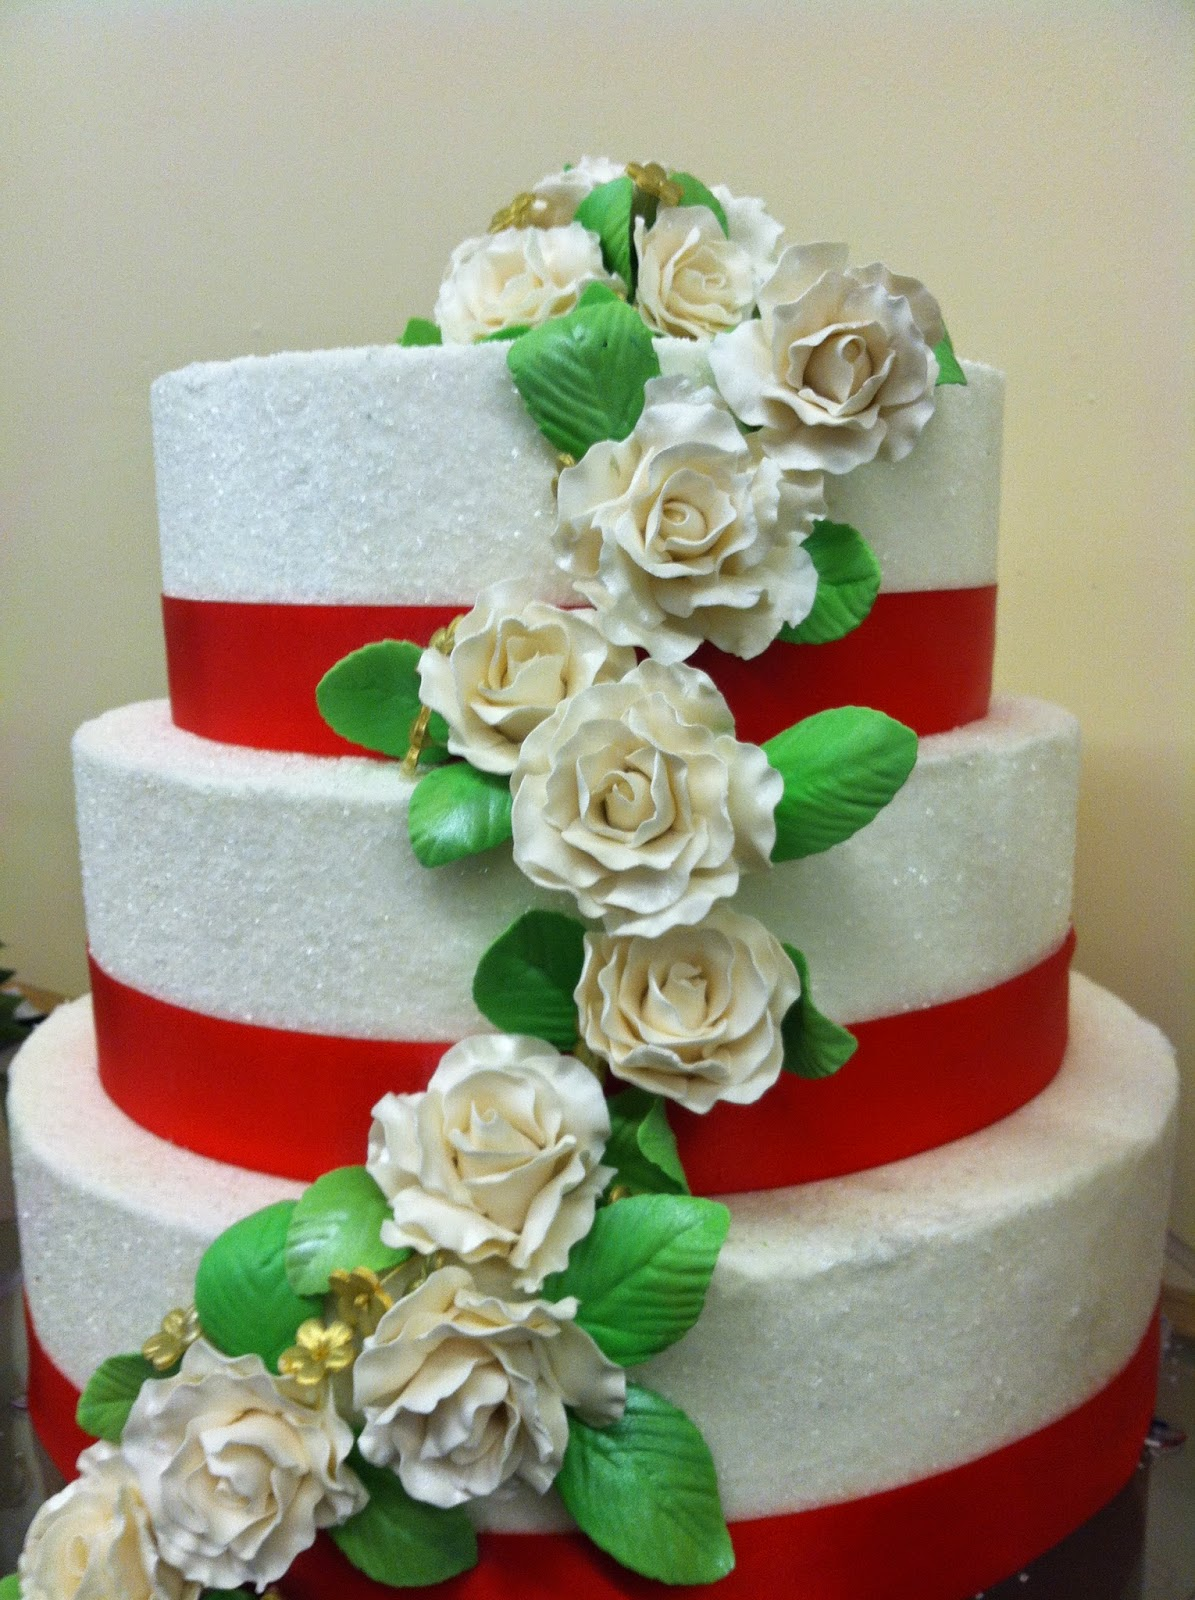 Wilton Cake Classes Hobby Lobby : Cakes by the Sugar Cains: Simple Christmas or Valentine ...